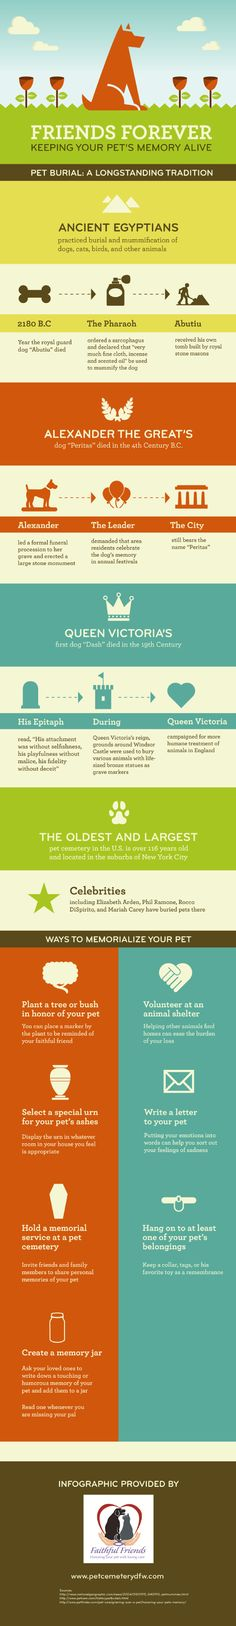 After the loss of a pet, some pet owners may keep collars, tags, or favorite toys to help cope with grief. These small mementos help to honor the pet's memory.  - infographic